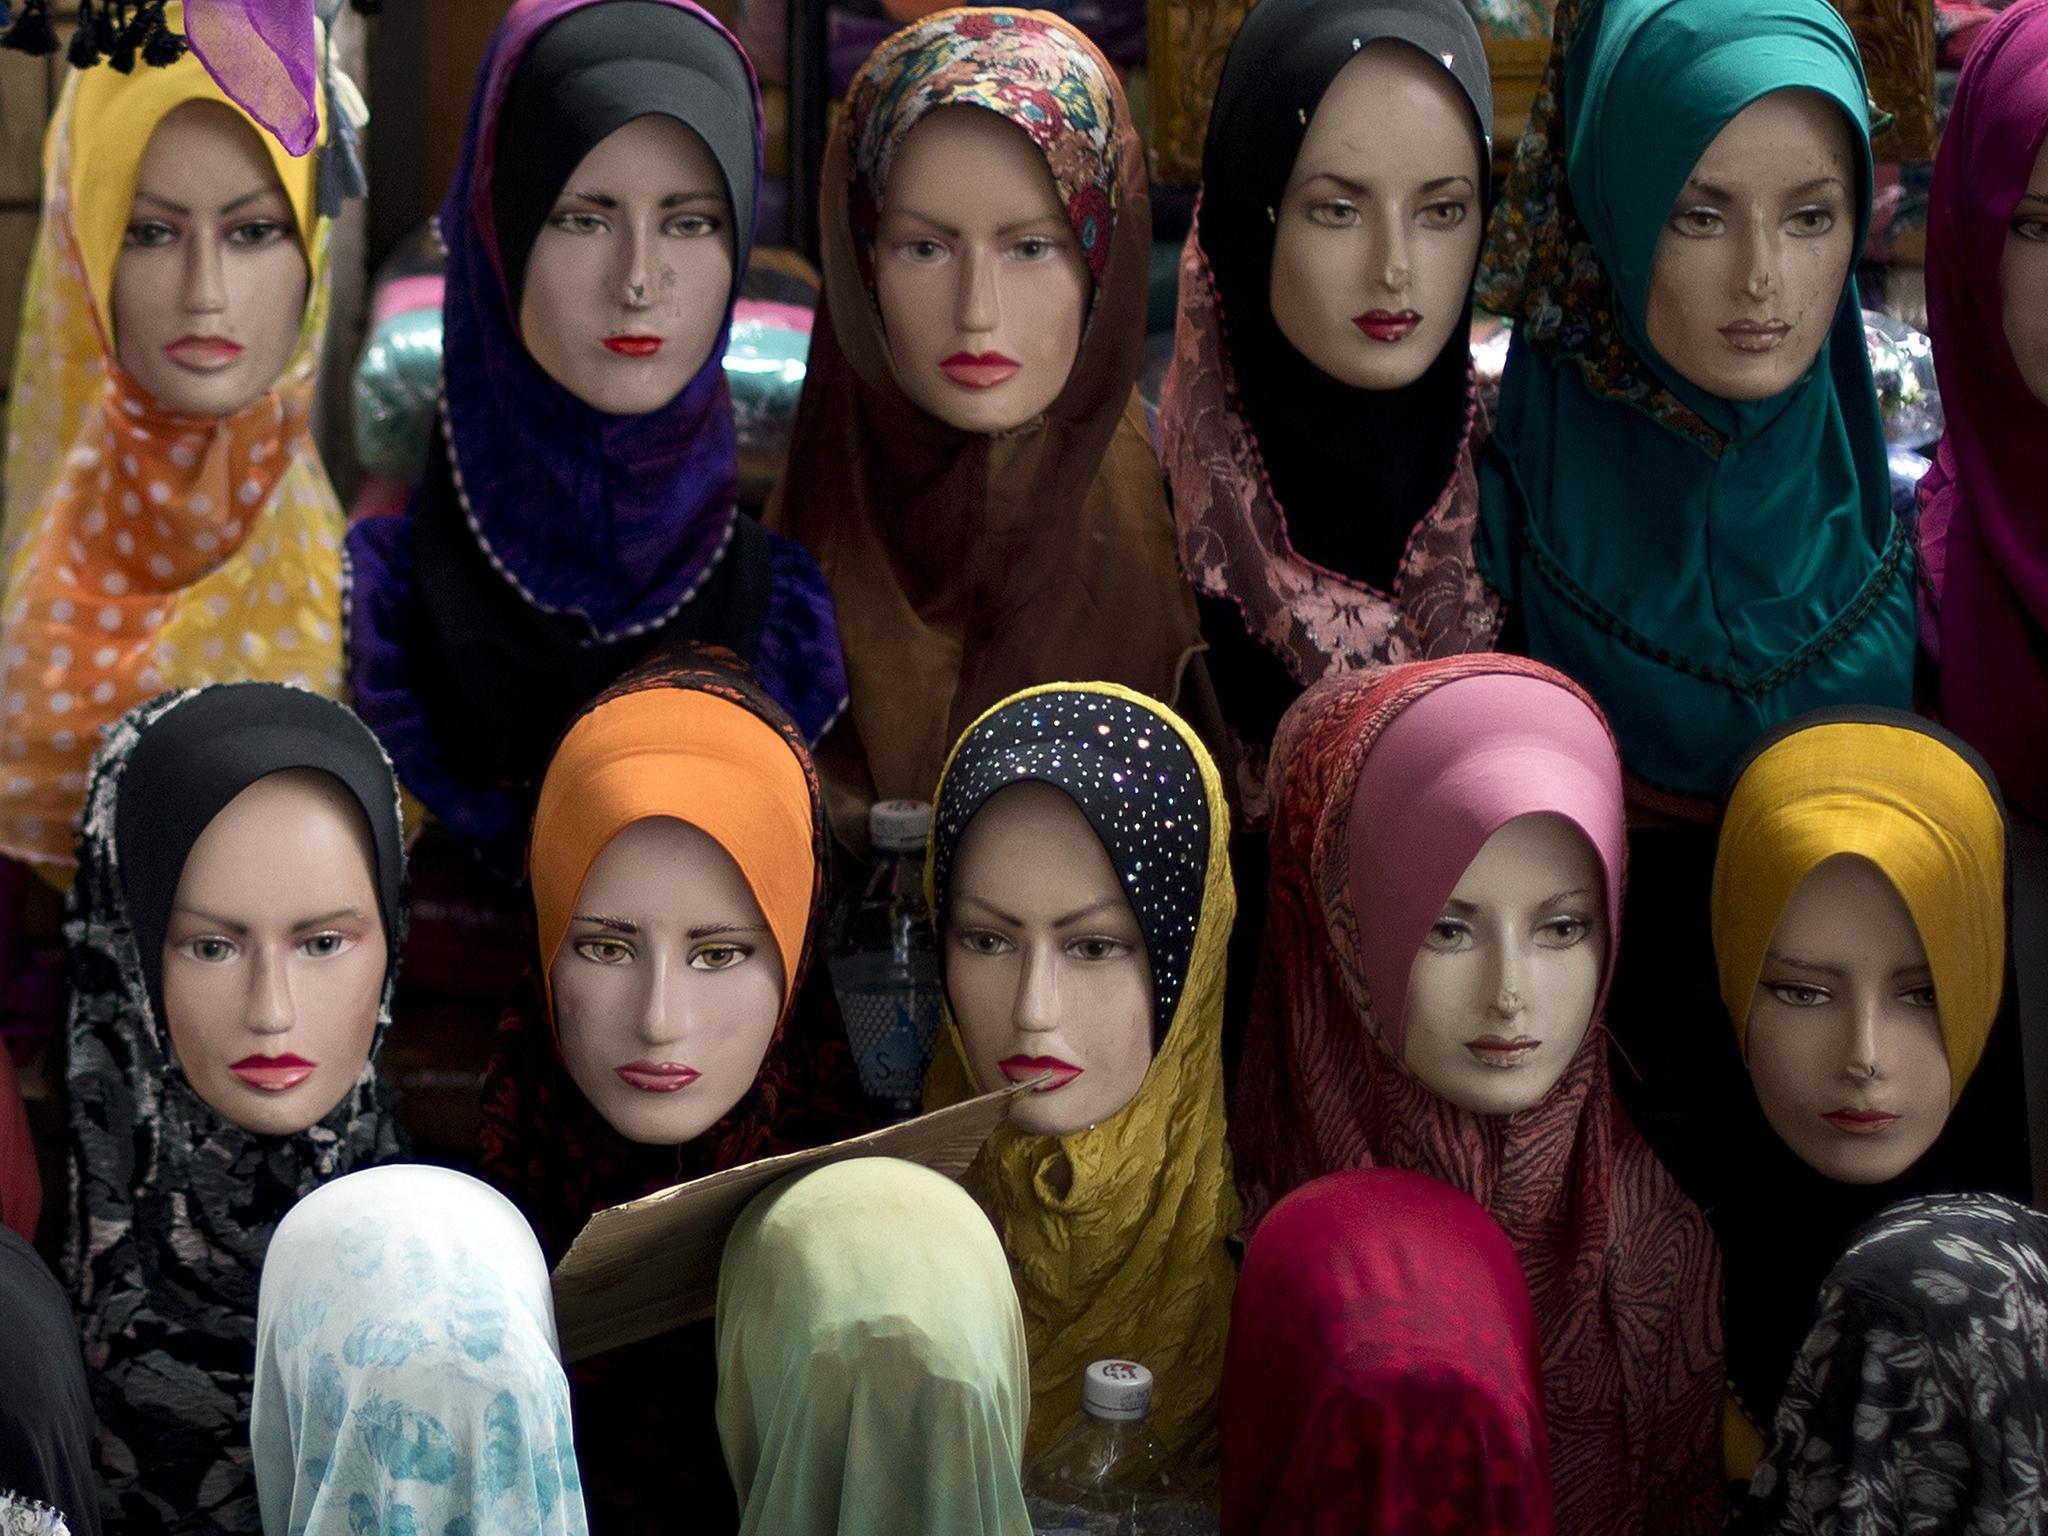 Men Please Stop Mansplaining The Hijab To Muslim Women